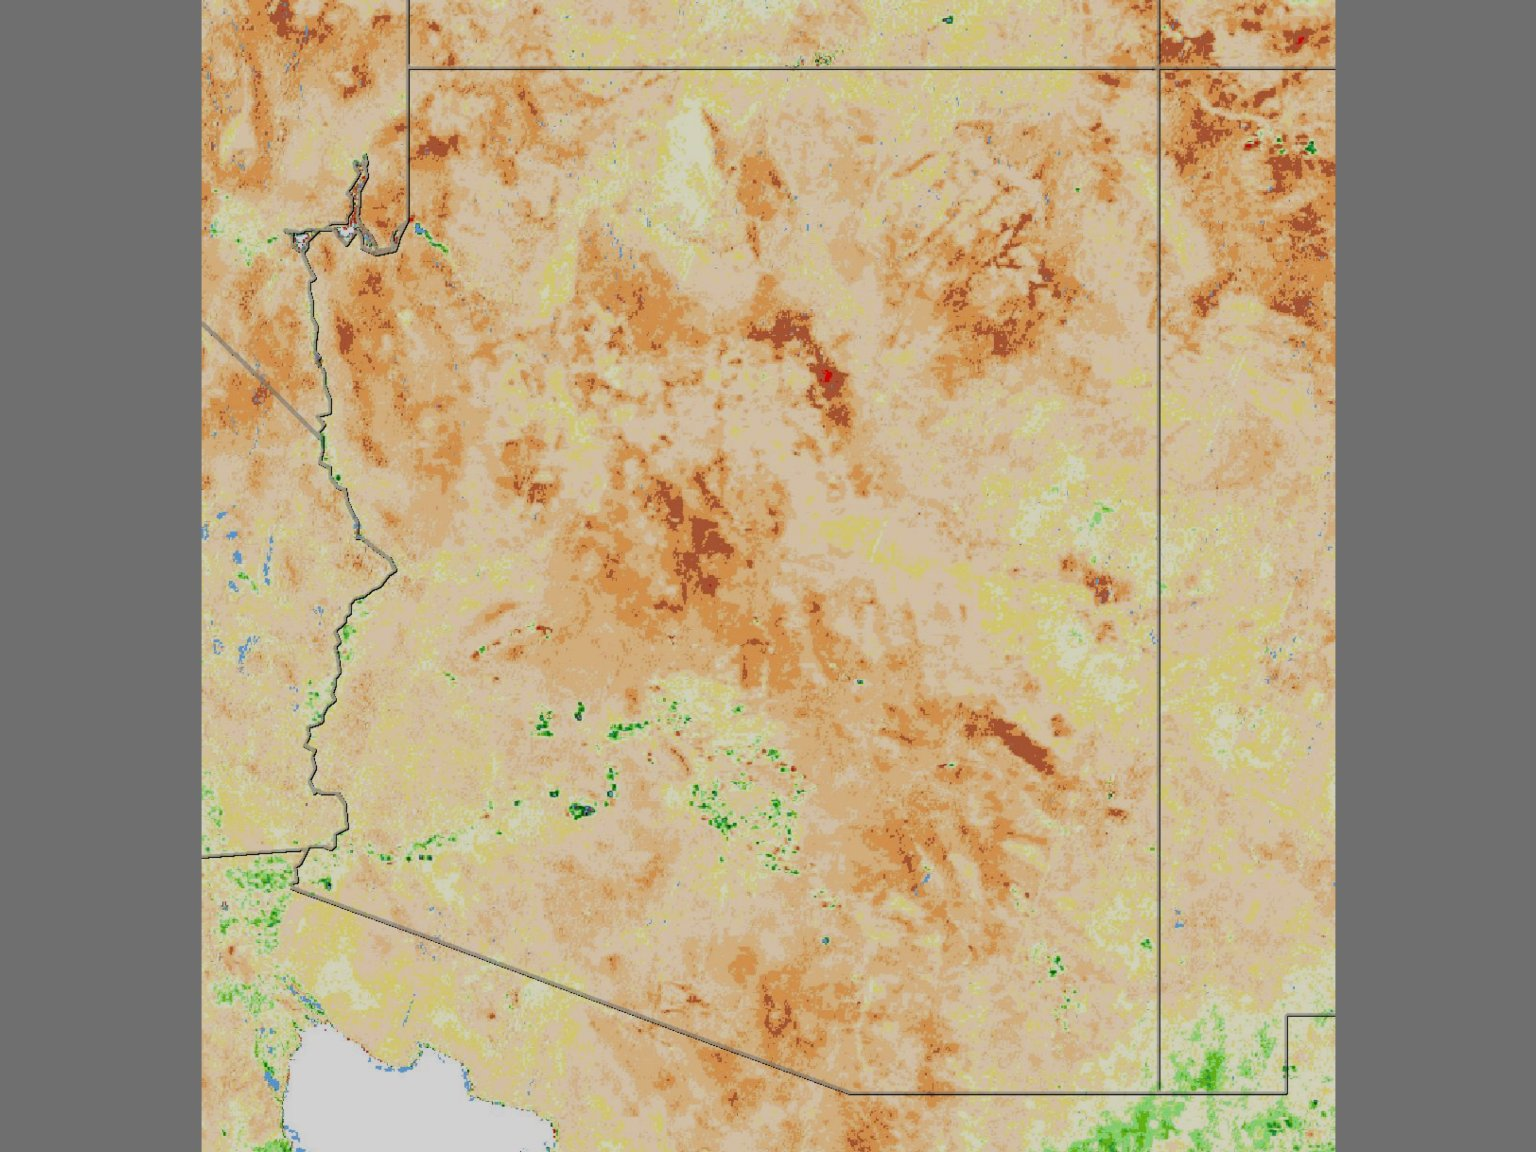 Drought over Western United States (Stills)